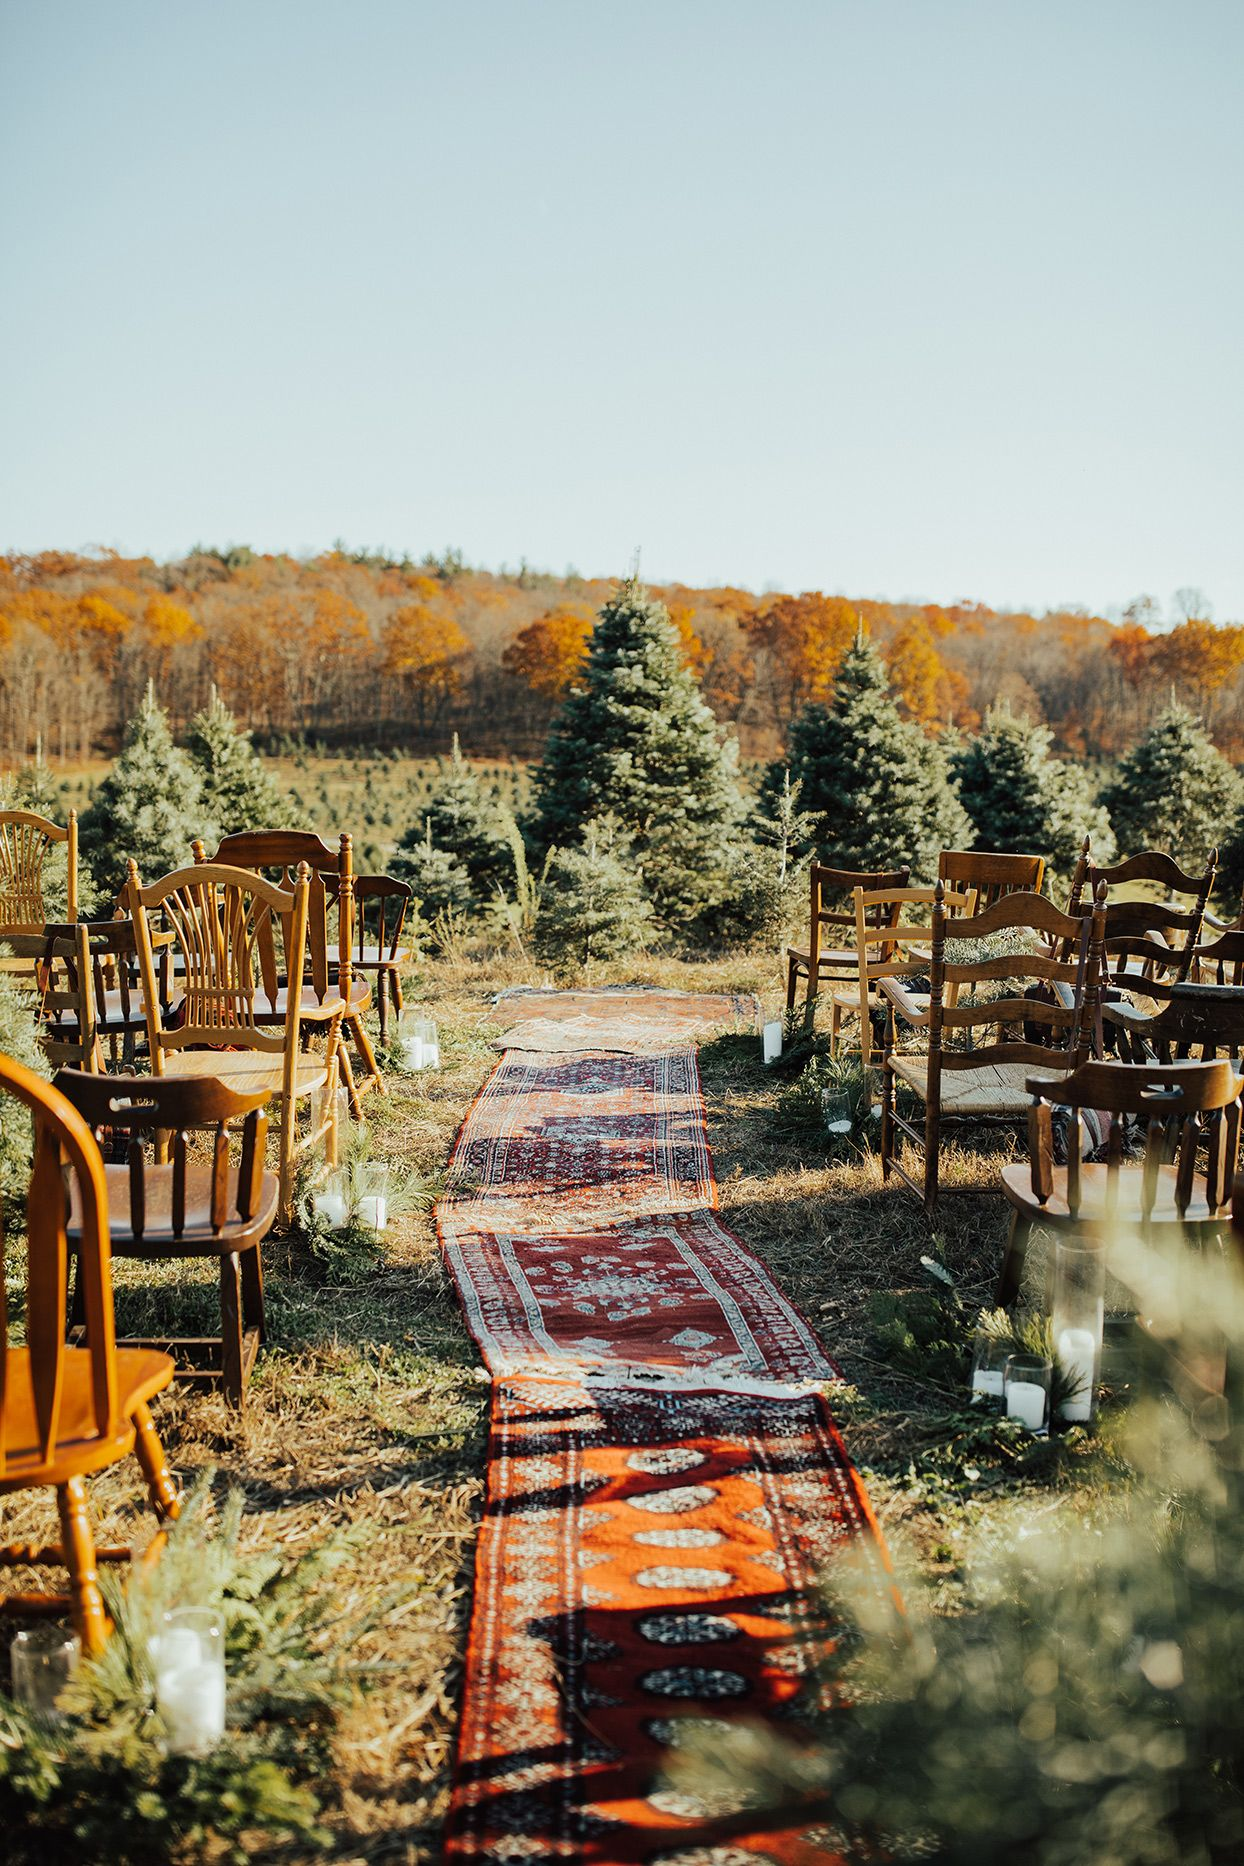 Exclusive Blogger Noelle Downing Married Her Best Friend On A Christmas Tree Farm In Rhinebeck New York In 2020 Tree Farm Photo Shoot Christmas Tree Farm Tree Farms